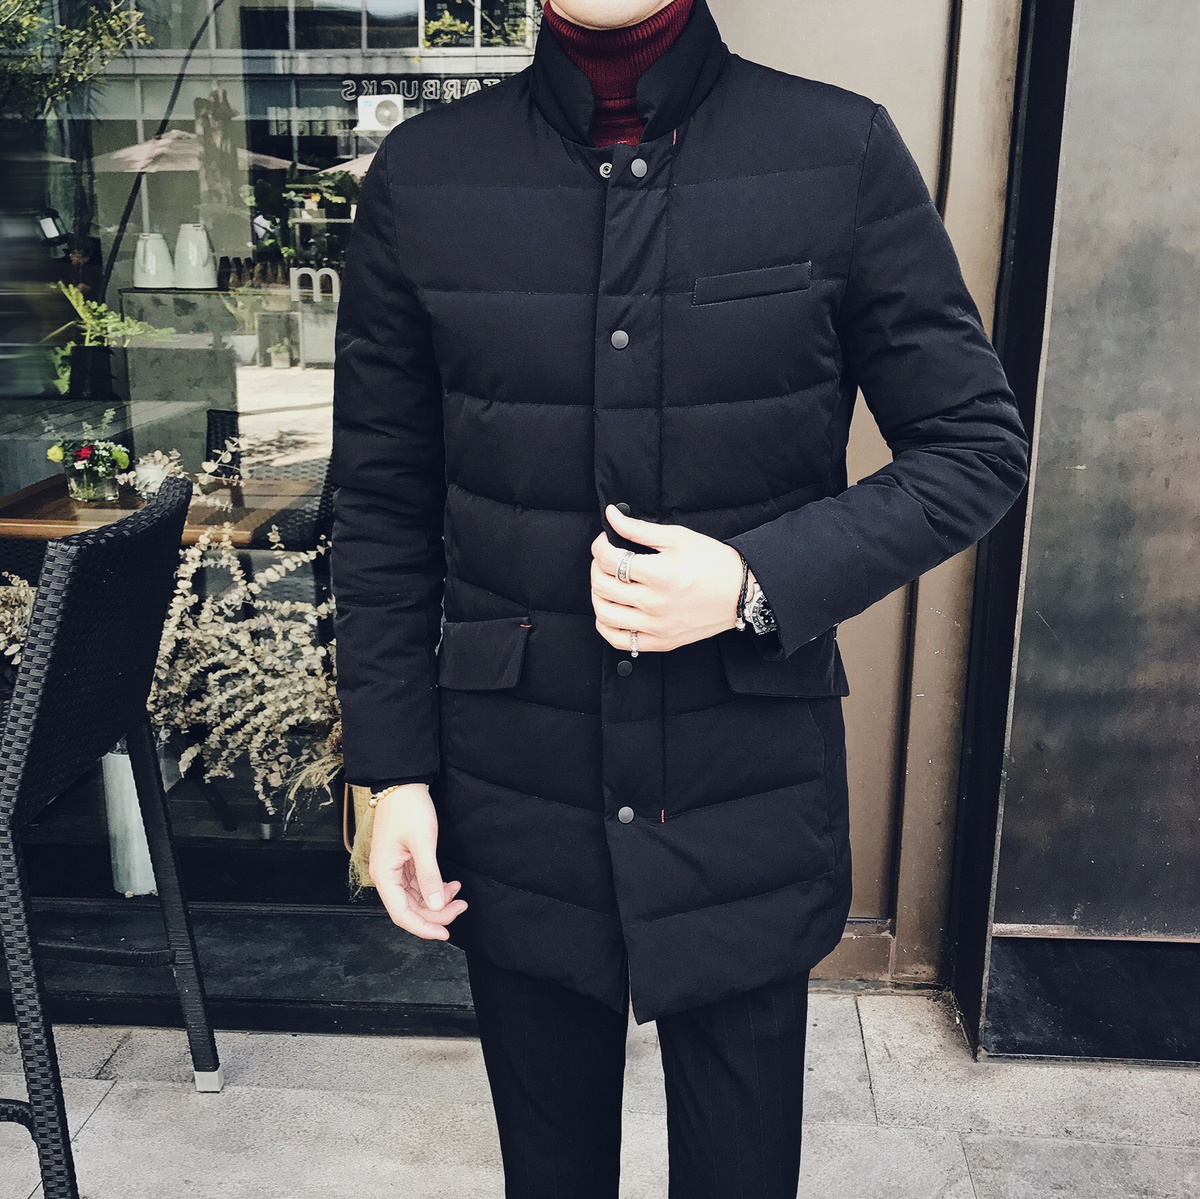 New 2017 England Warm Self-cultivation Casaco Masculino Long Down Men's Snow Jackets Filler White Duck Feather Male Winter Coats купить